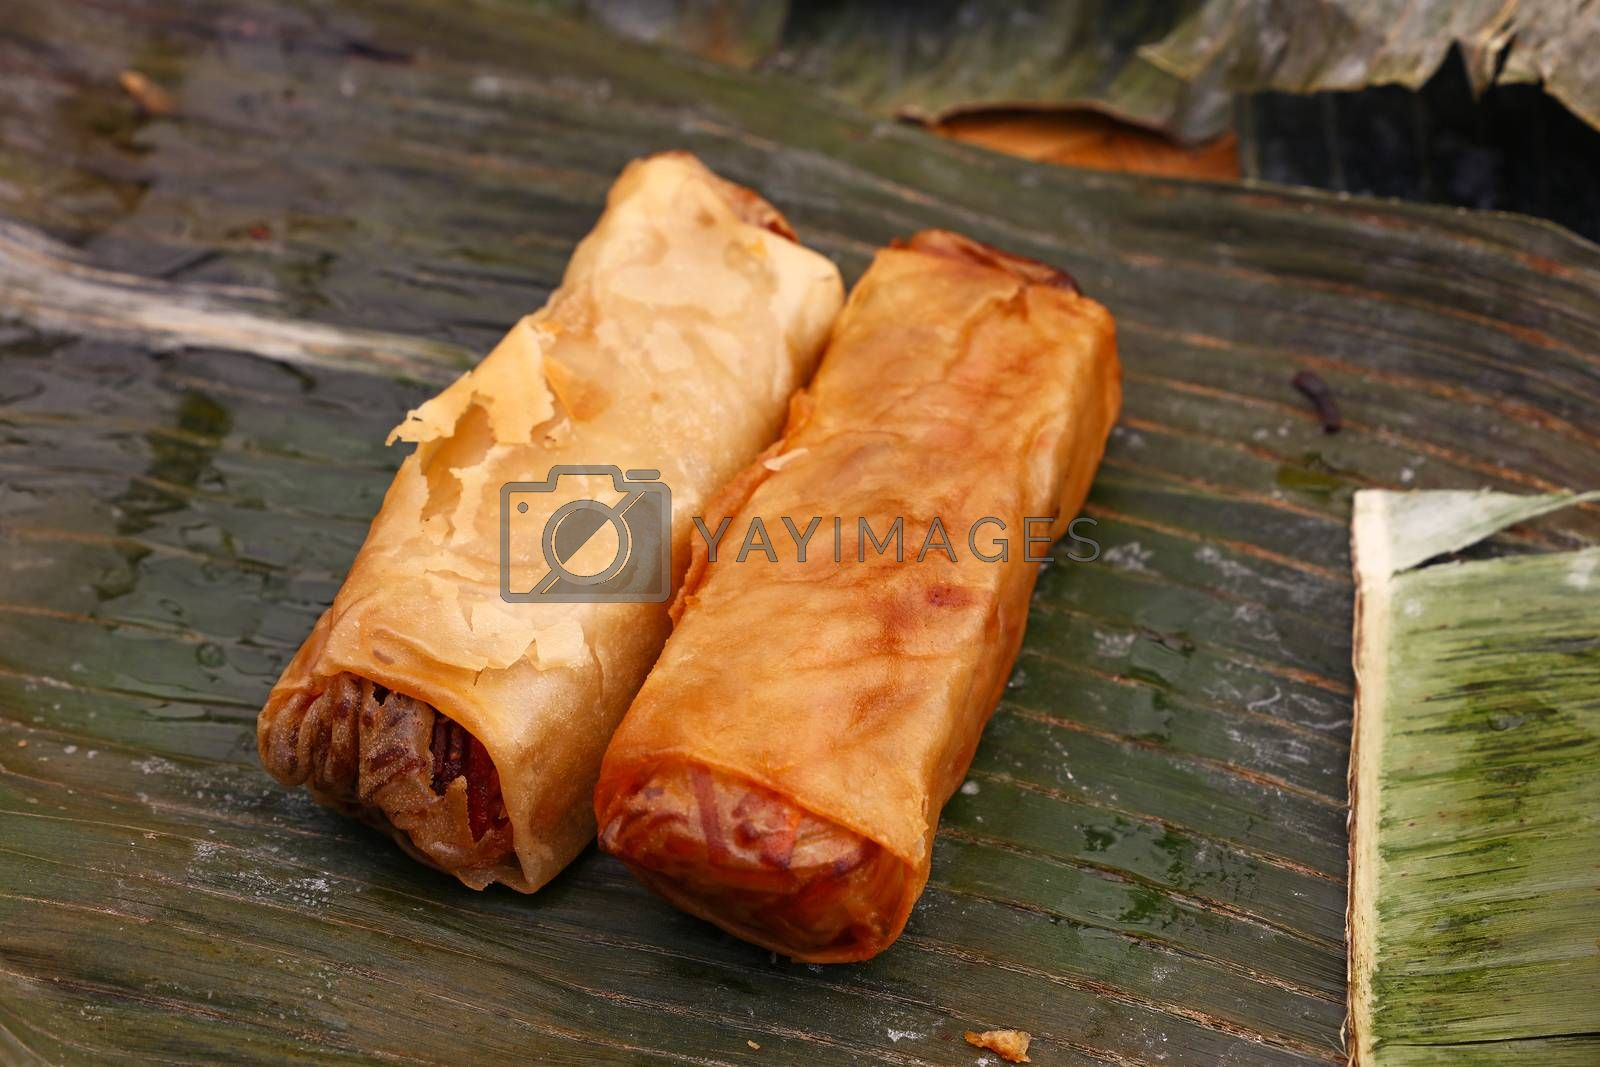 Portion of two deep fried crispy spring rolls, traditional Asian cuisine appetizer snack, served on green banana leaves, high angle view